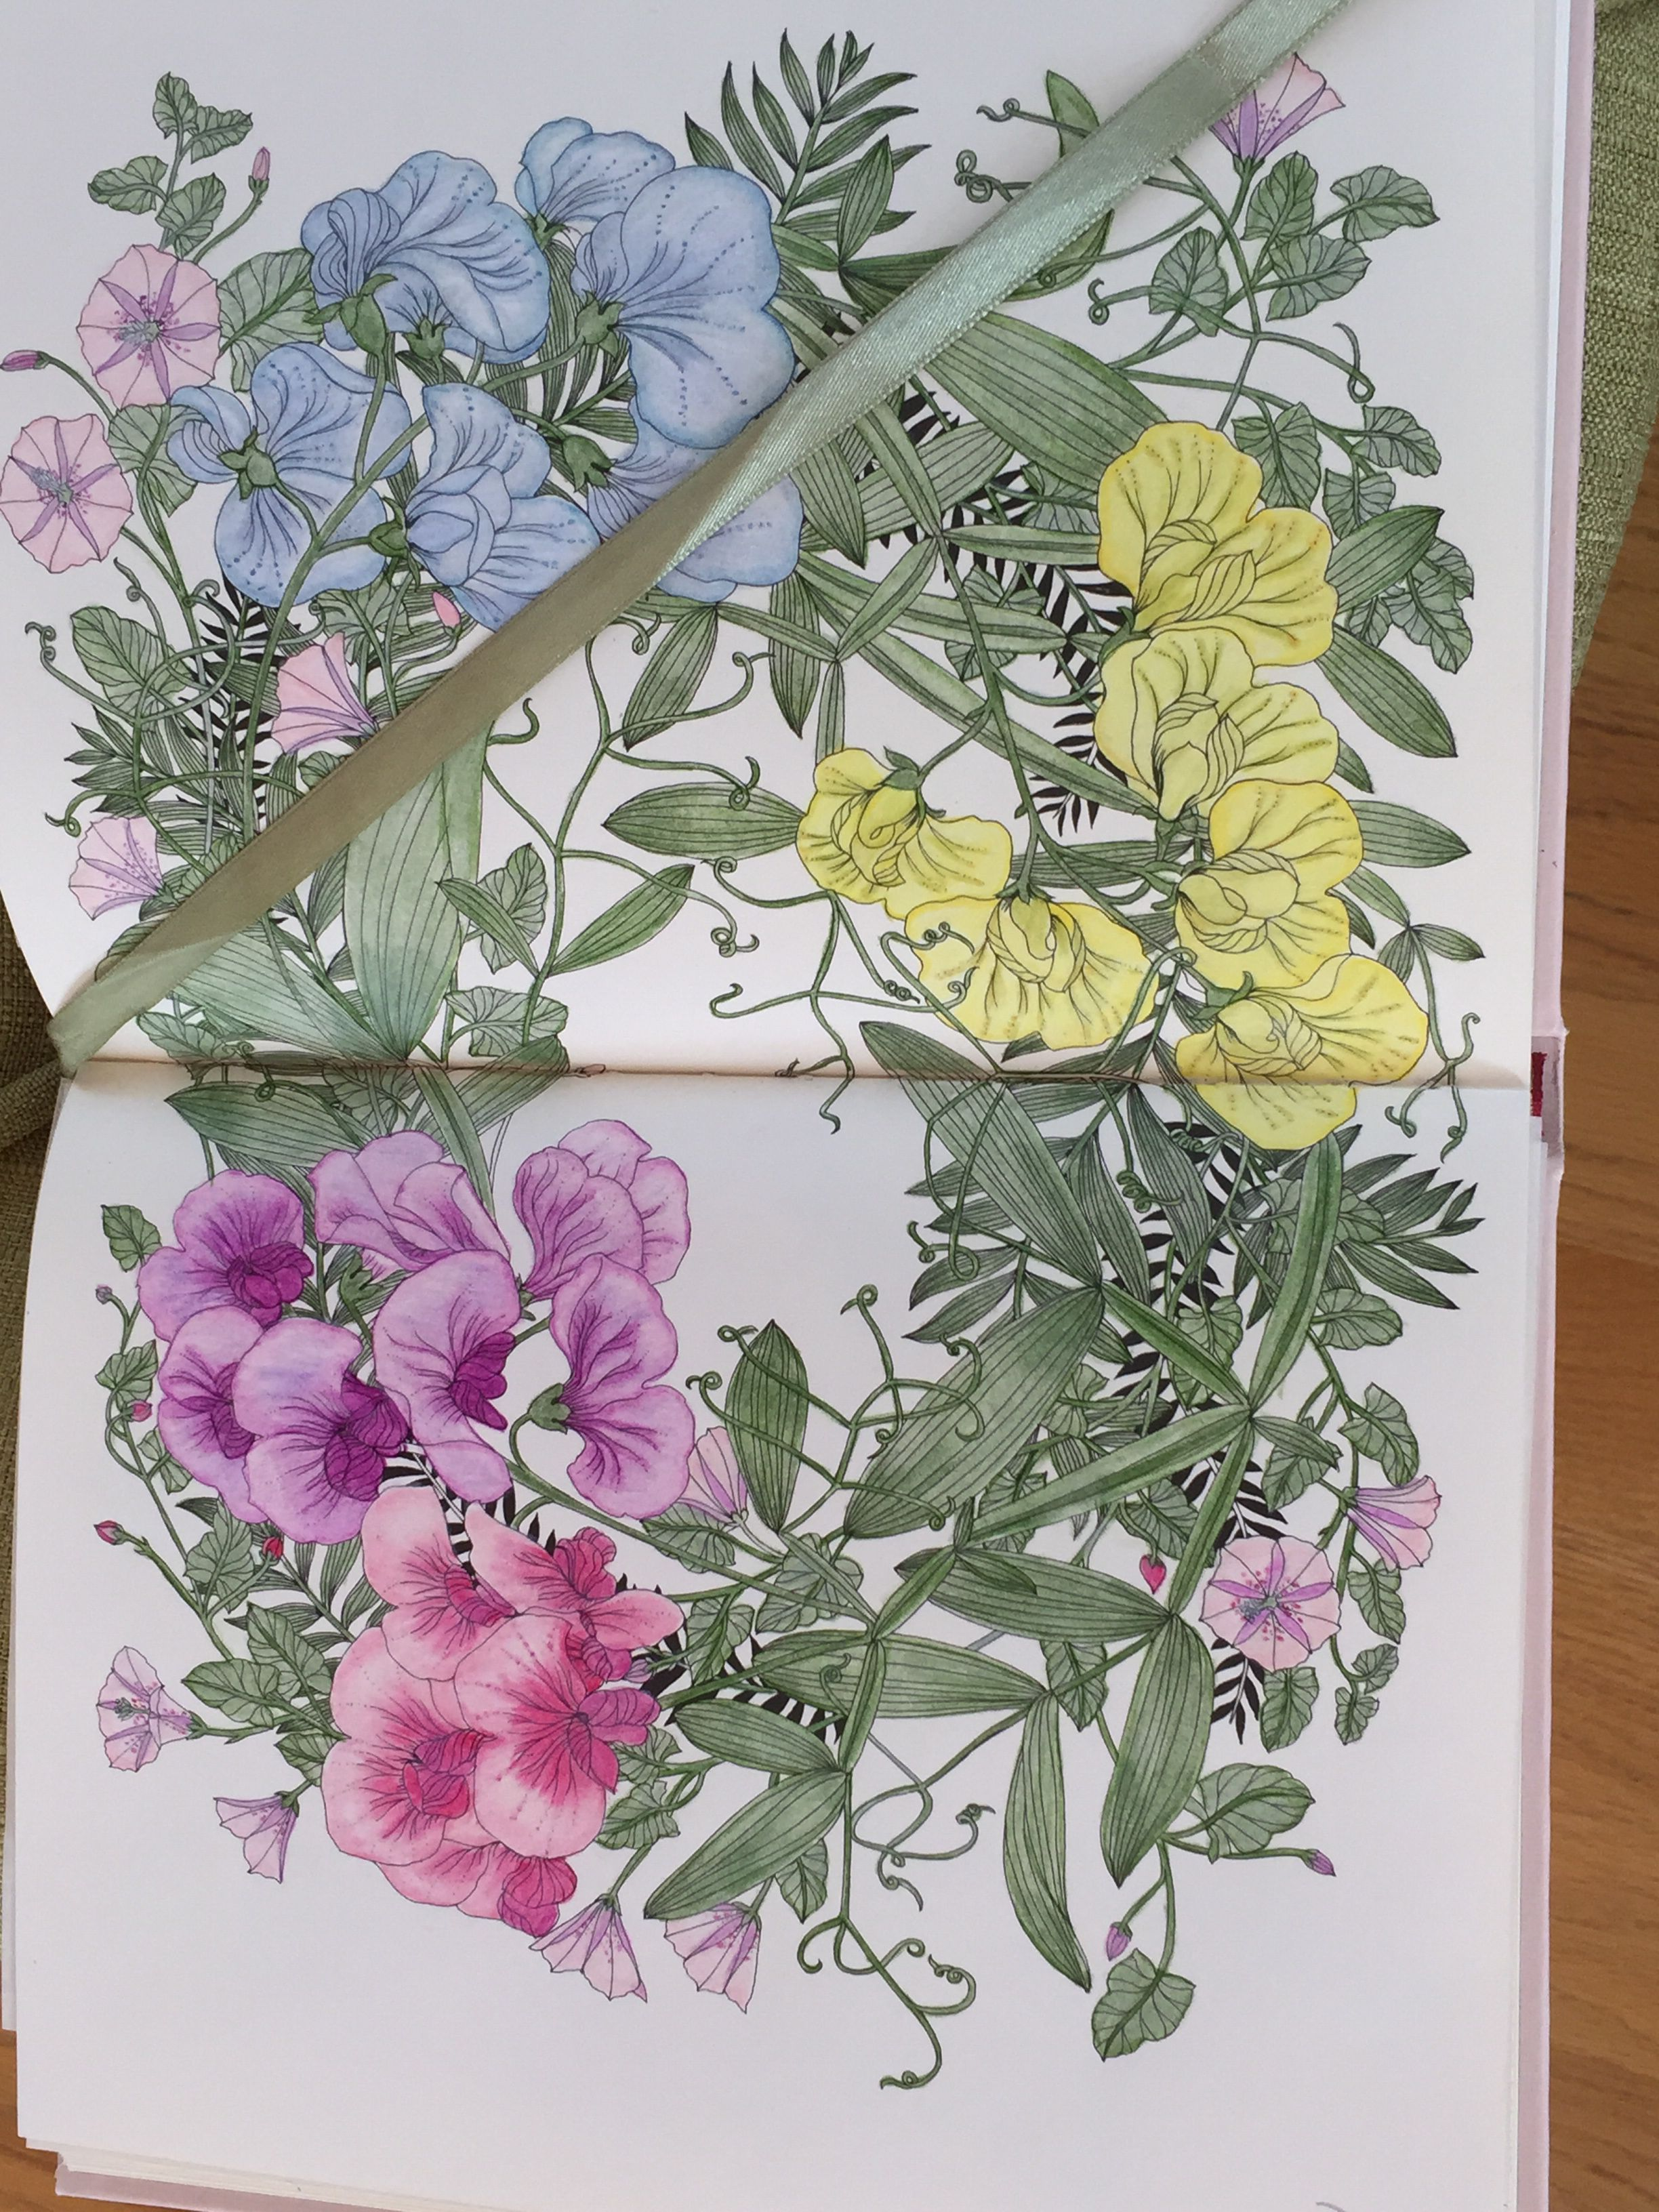 I've Really Enjoyed Coloring In This Beautiful Book!! Hoping